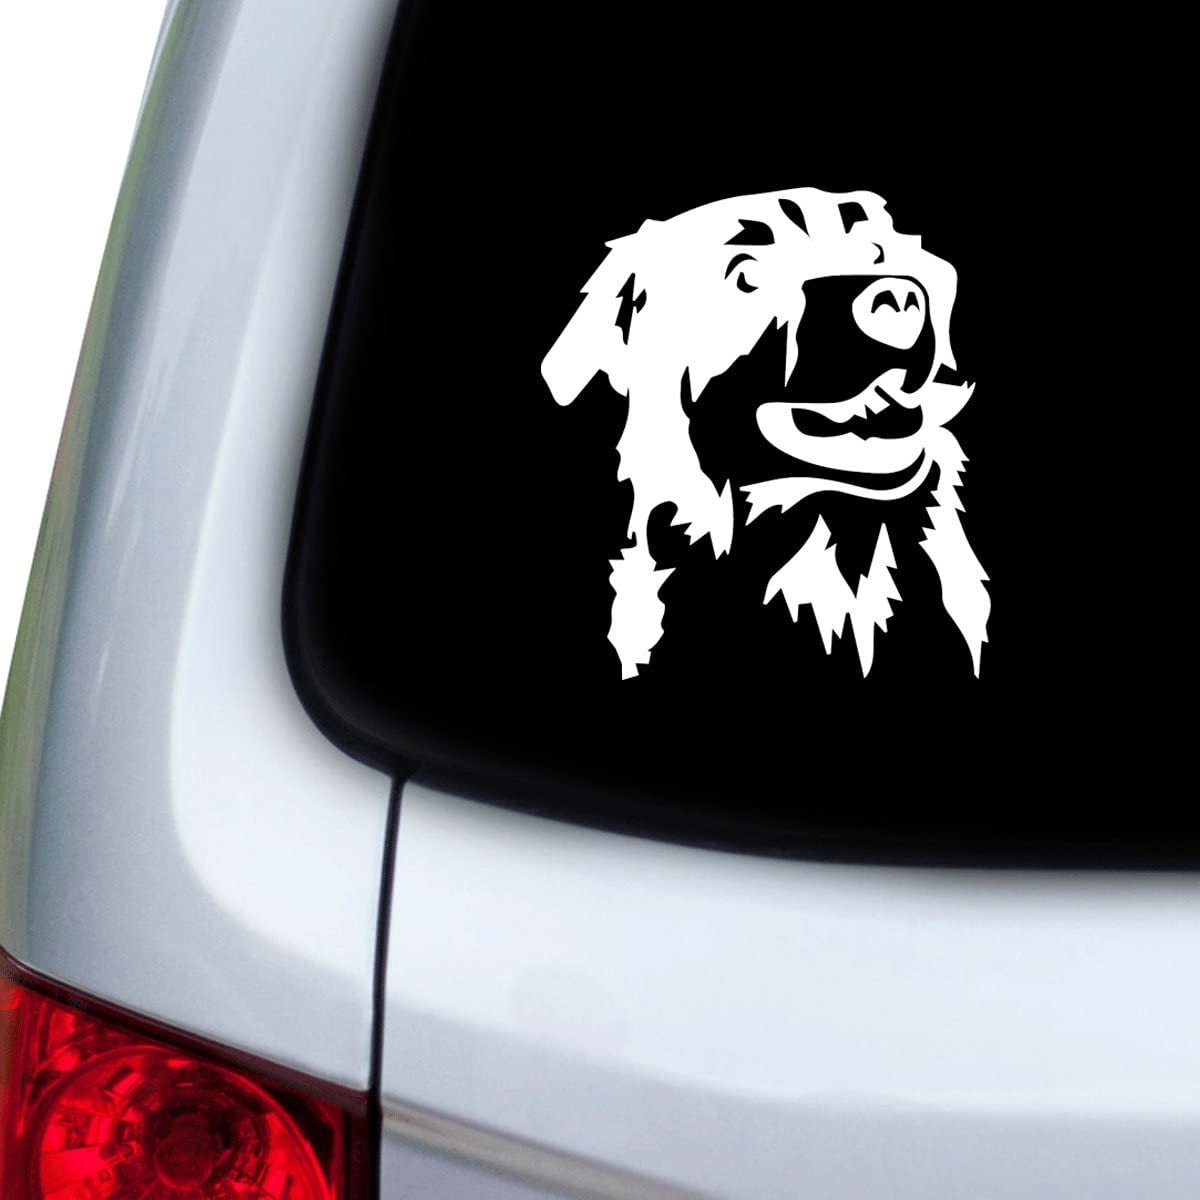 StickAny Car and Auto Decal Series Australian shepherd 3 Sticker for Windows Hoods Doors Red